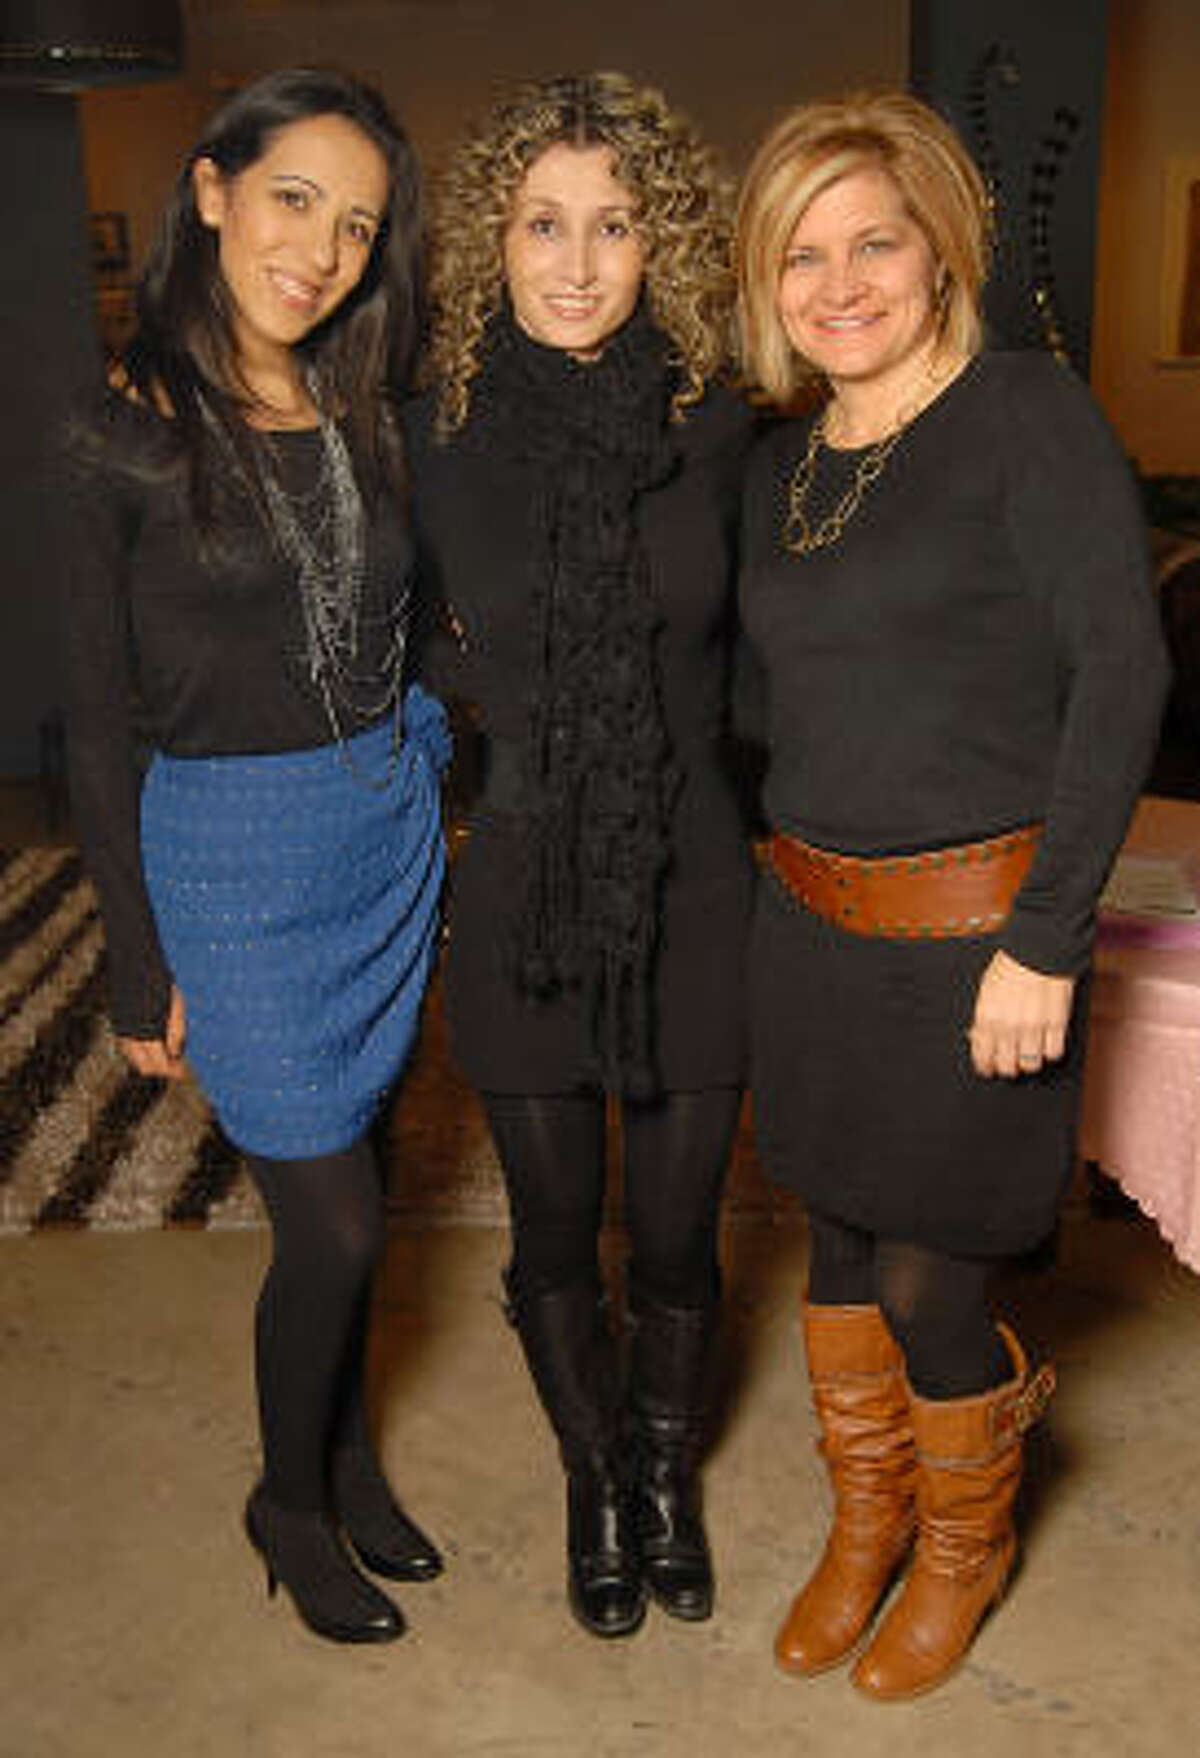 Paulina Garcia, from left, Adriana Gonzalez and Kathy Dimmitt at the Les Provinciales Design for a Cause event at Roche Bobois